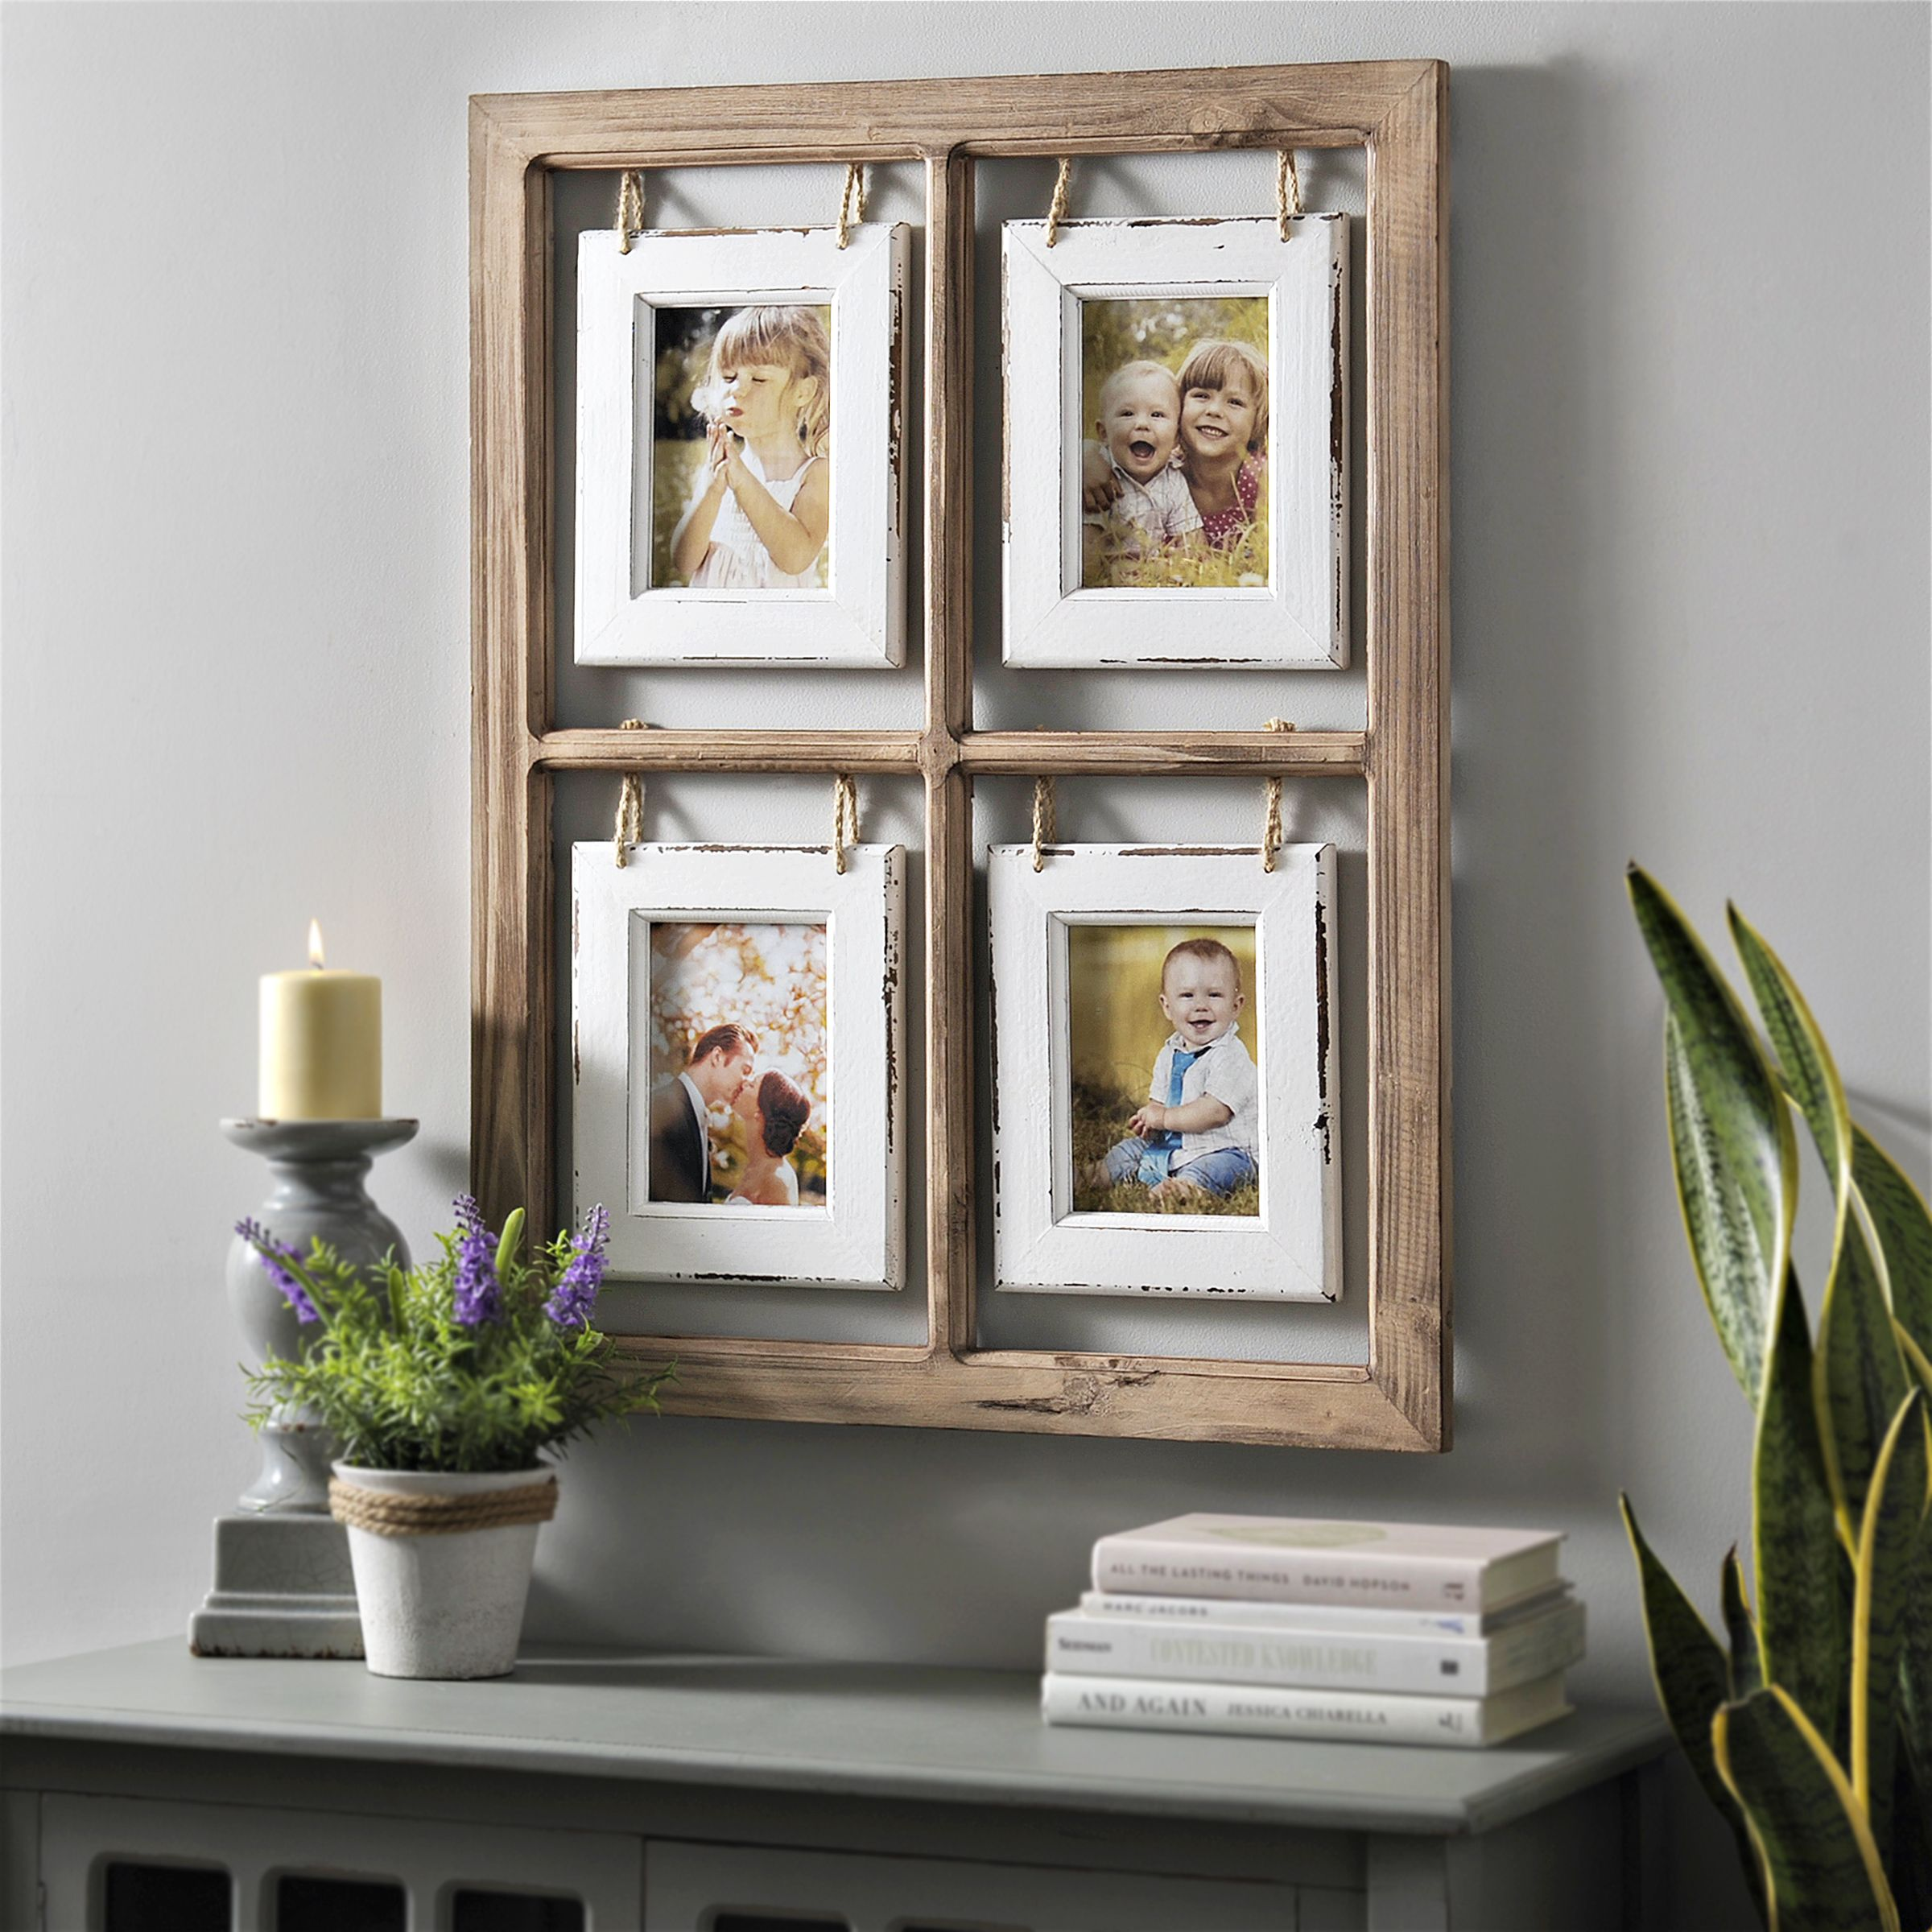 Add A Touch Of Rustic To Your Favorite Moments Our Natural Hanging Window Pane Collage Frame Has The Perfect Whi Window Frame Decor Frame Decor Collage Frames